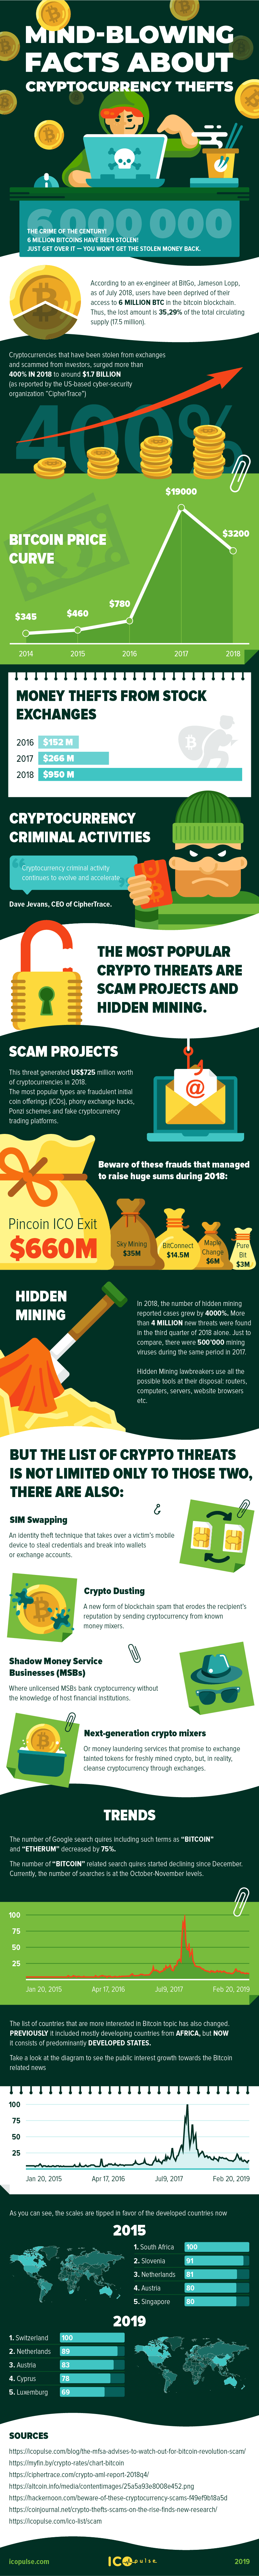 infographic cryptocurrency theft